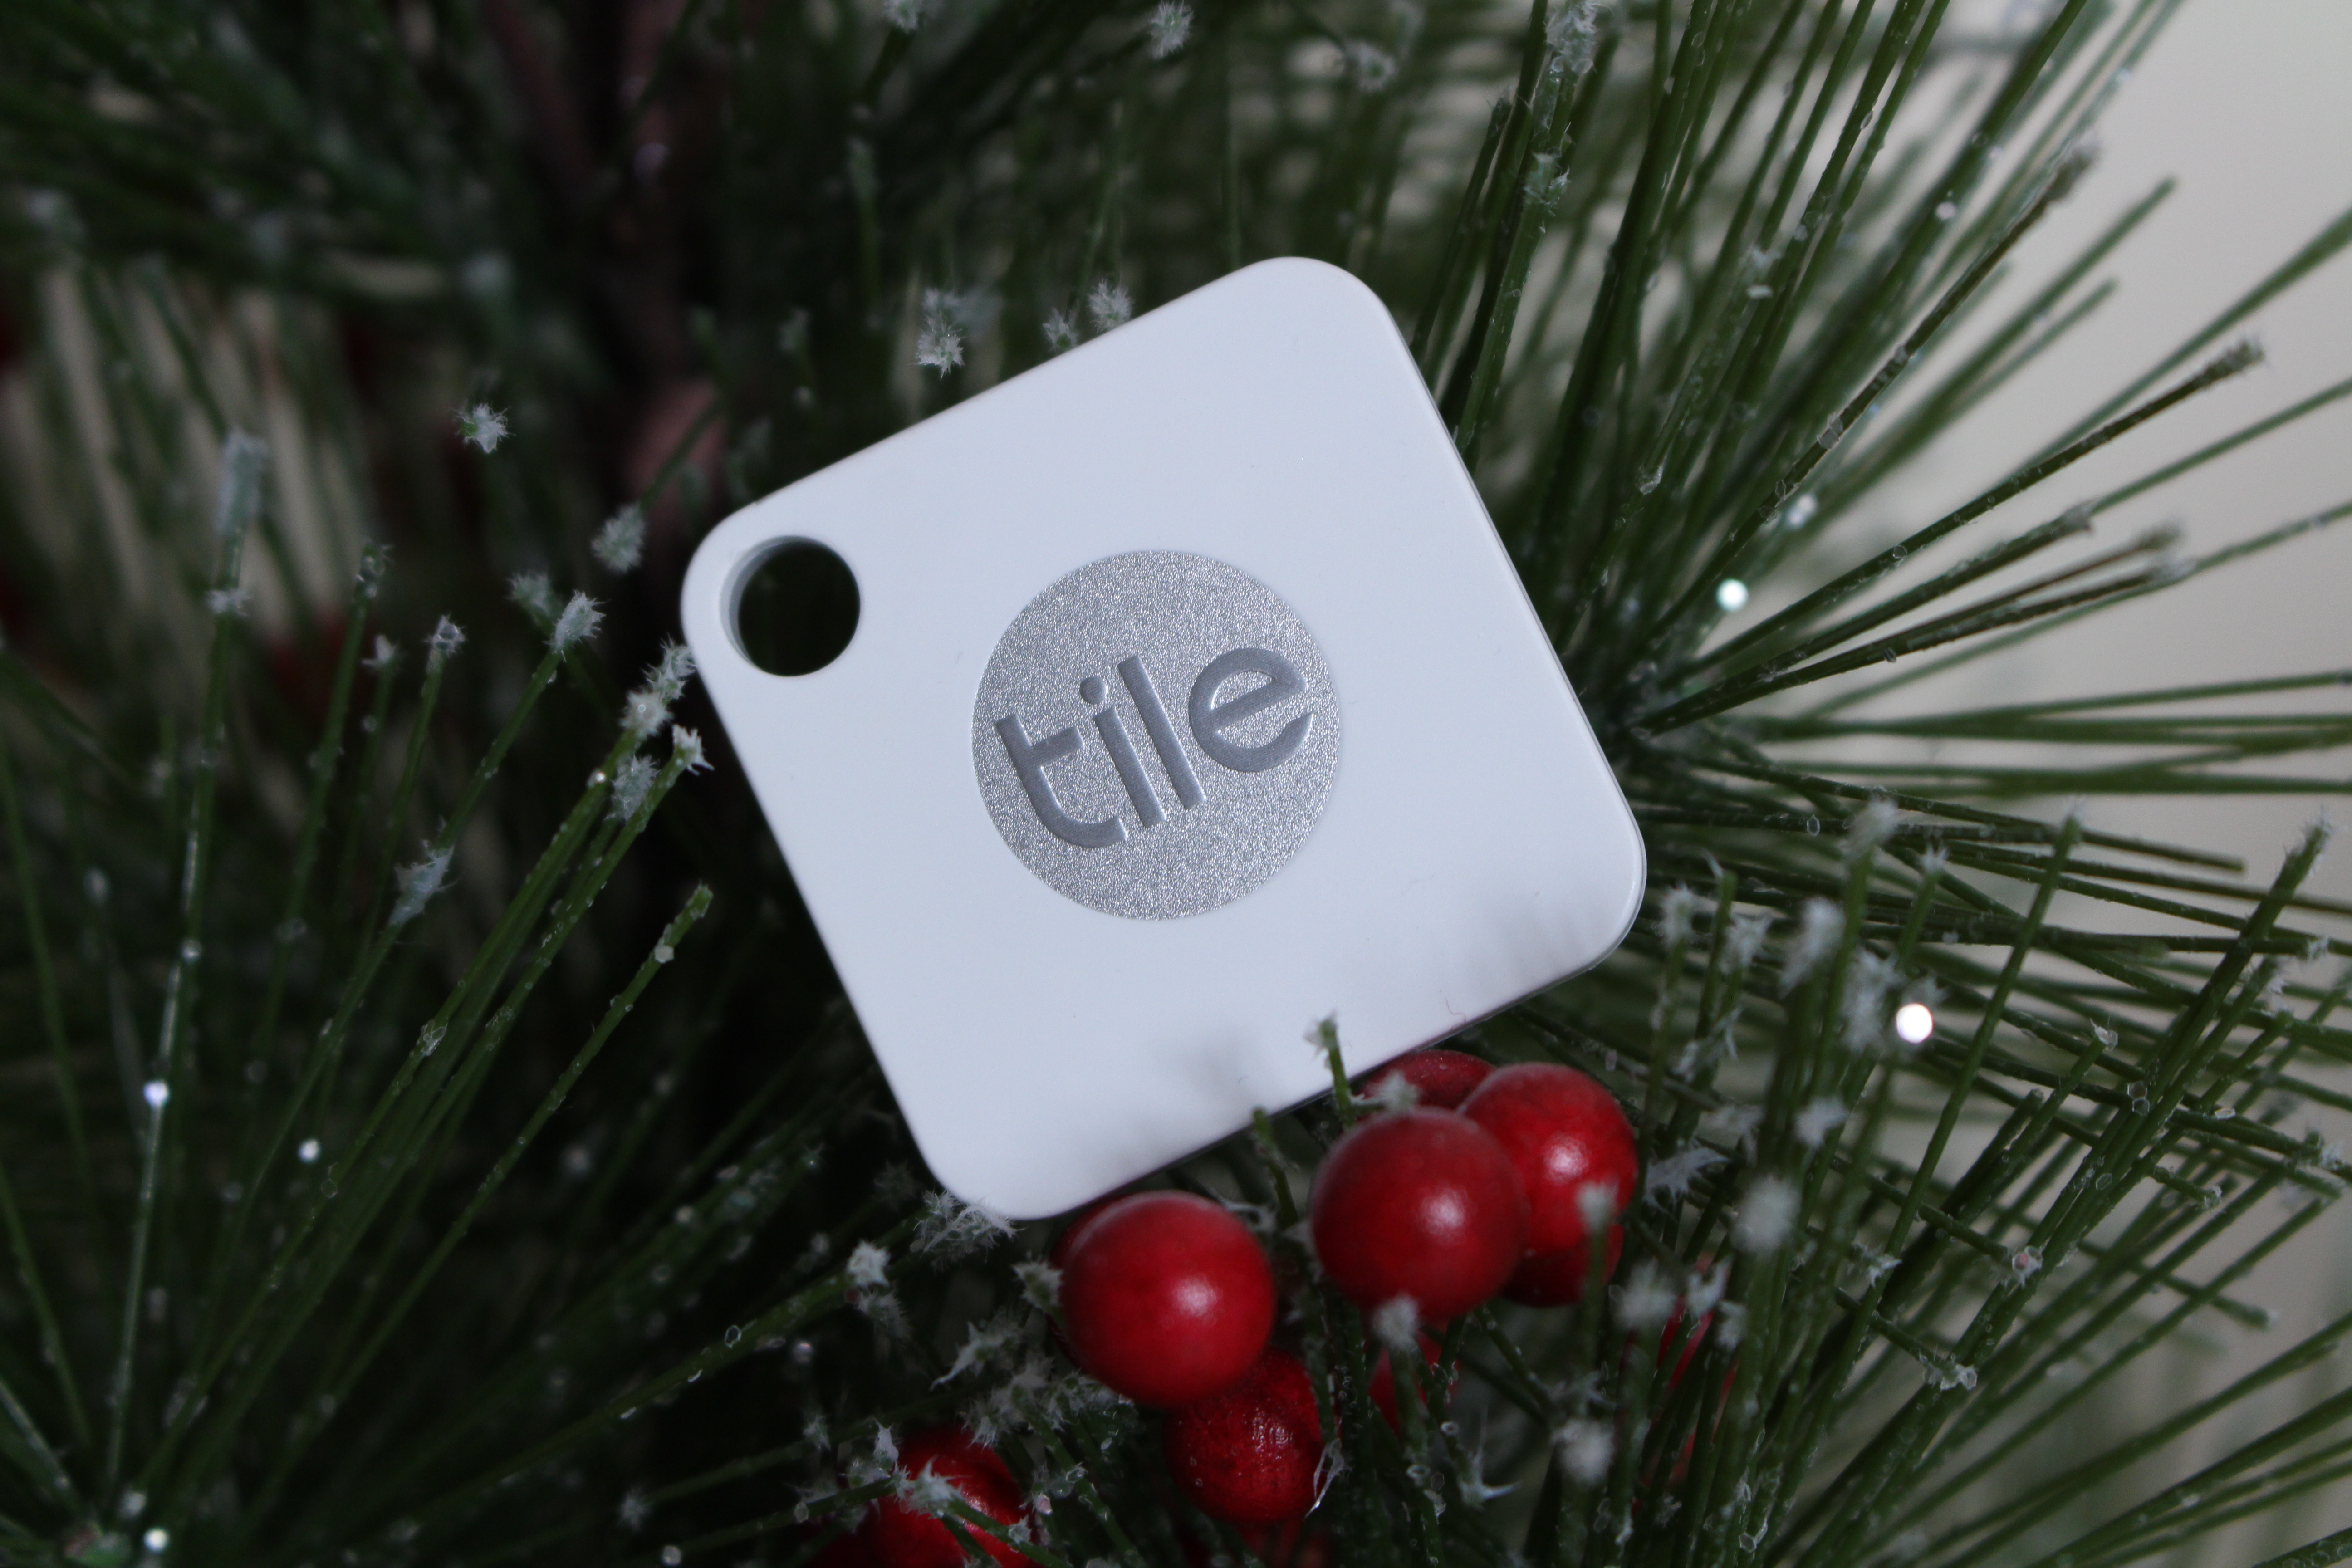 tile holiday gift perfect gift tileit by tufashionpetite alejandra avila